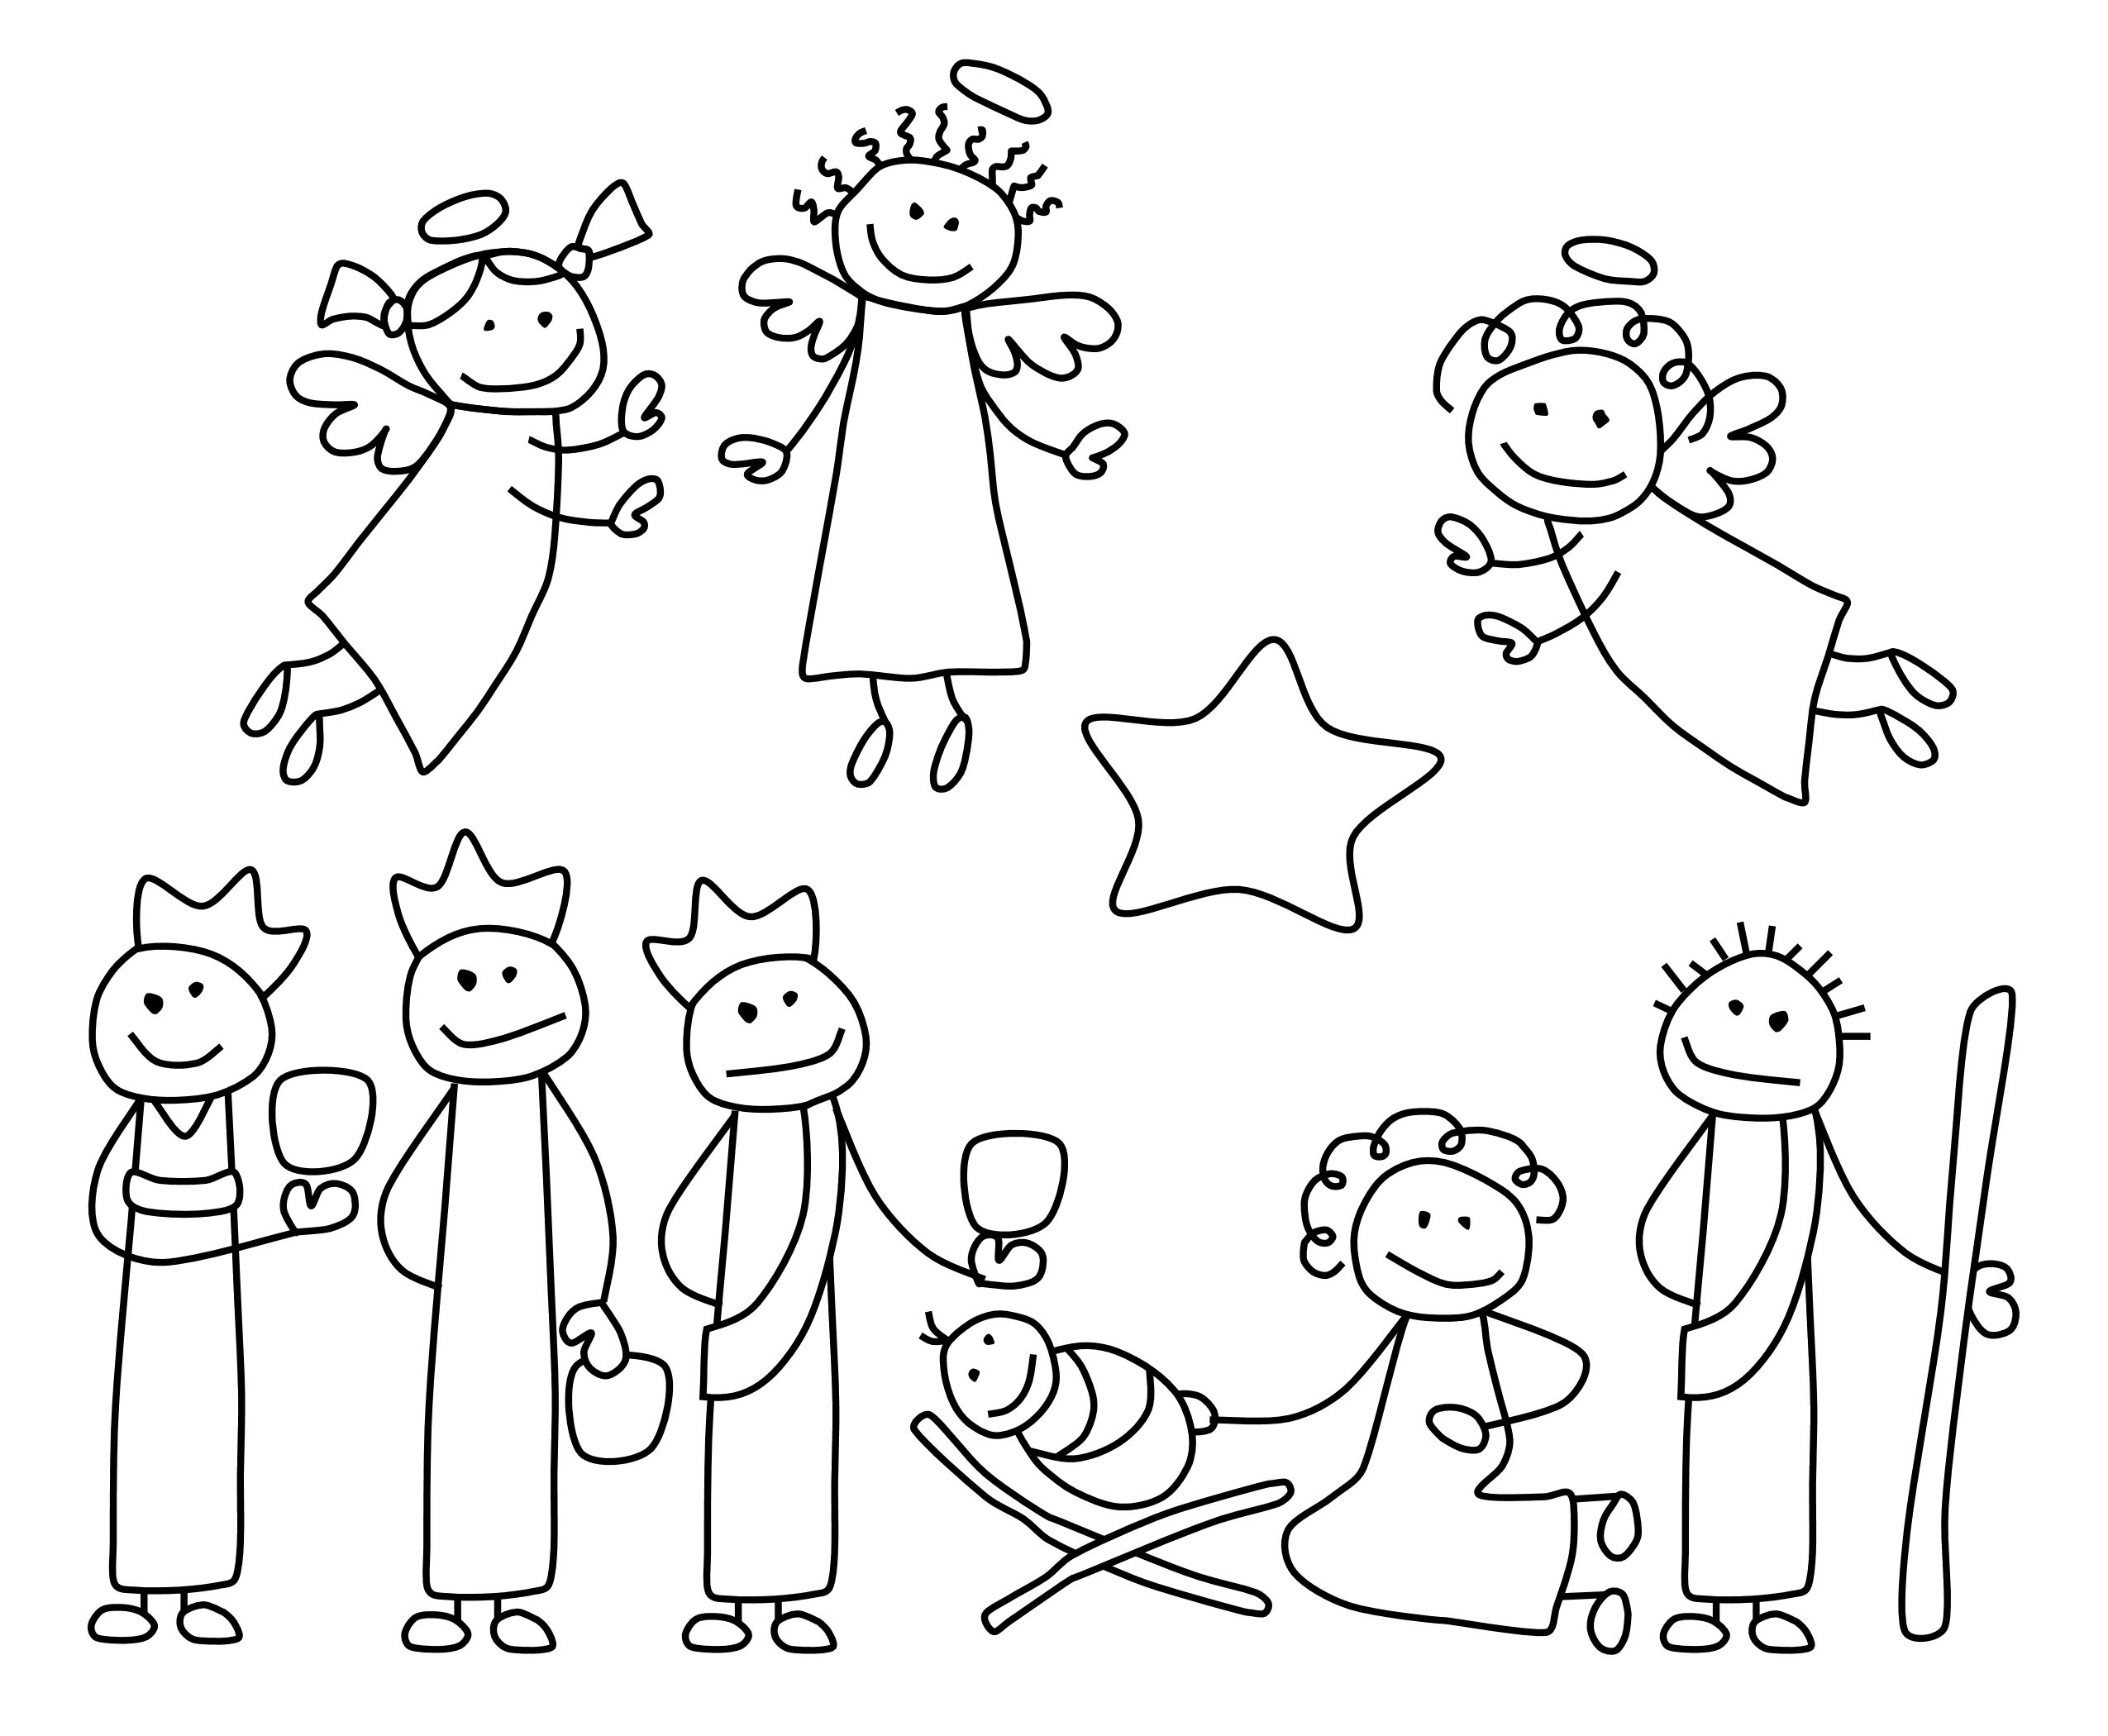 2550x2100 Stick Figure Family Coloring Page